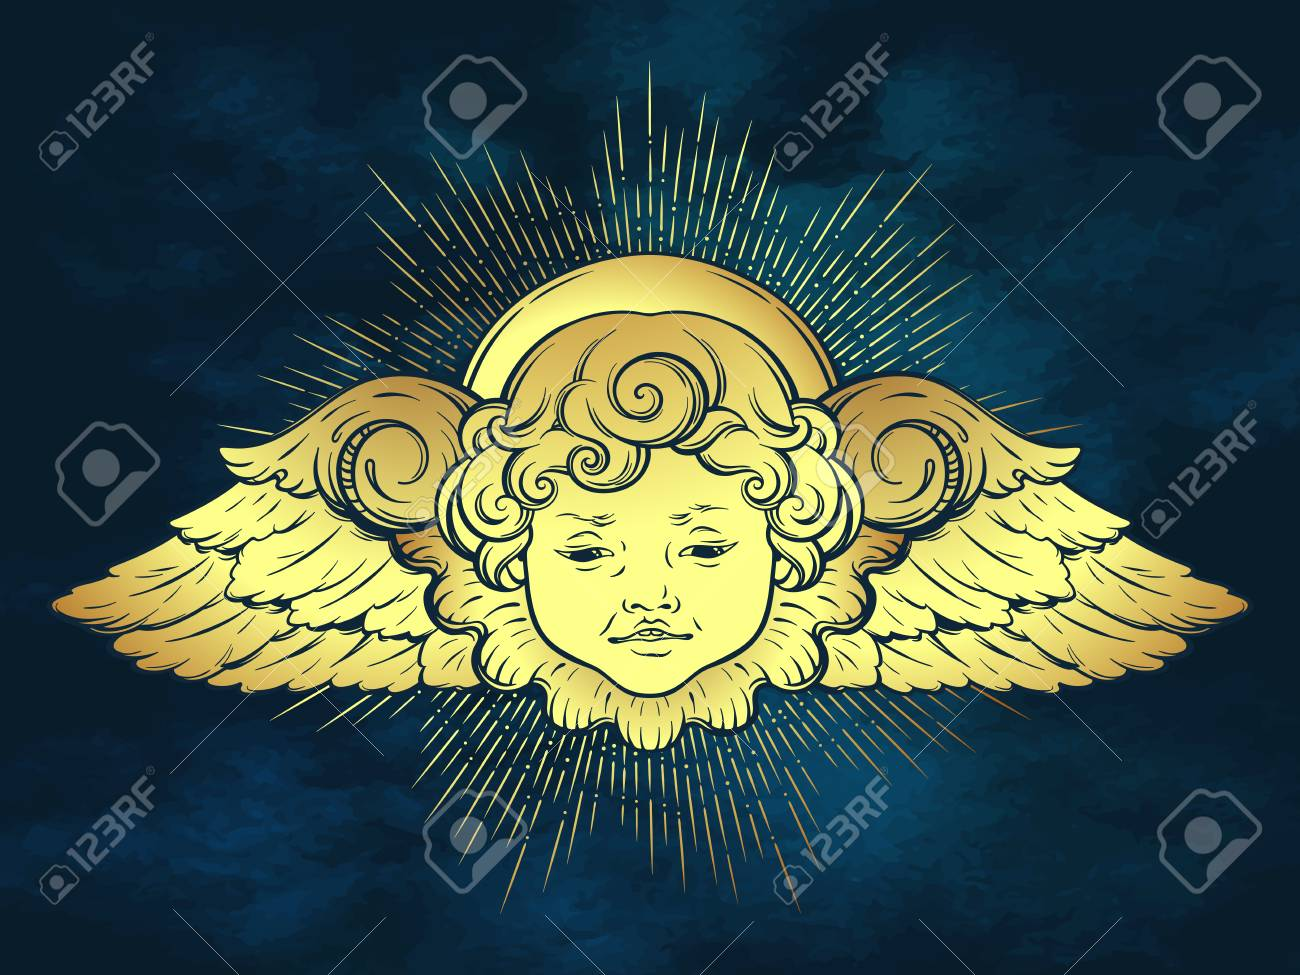 Gold Cherub Cute Winged Curly Smiling Baby Boy Angel With Rays 1300x975